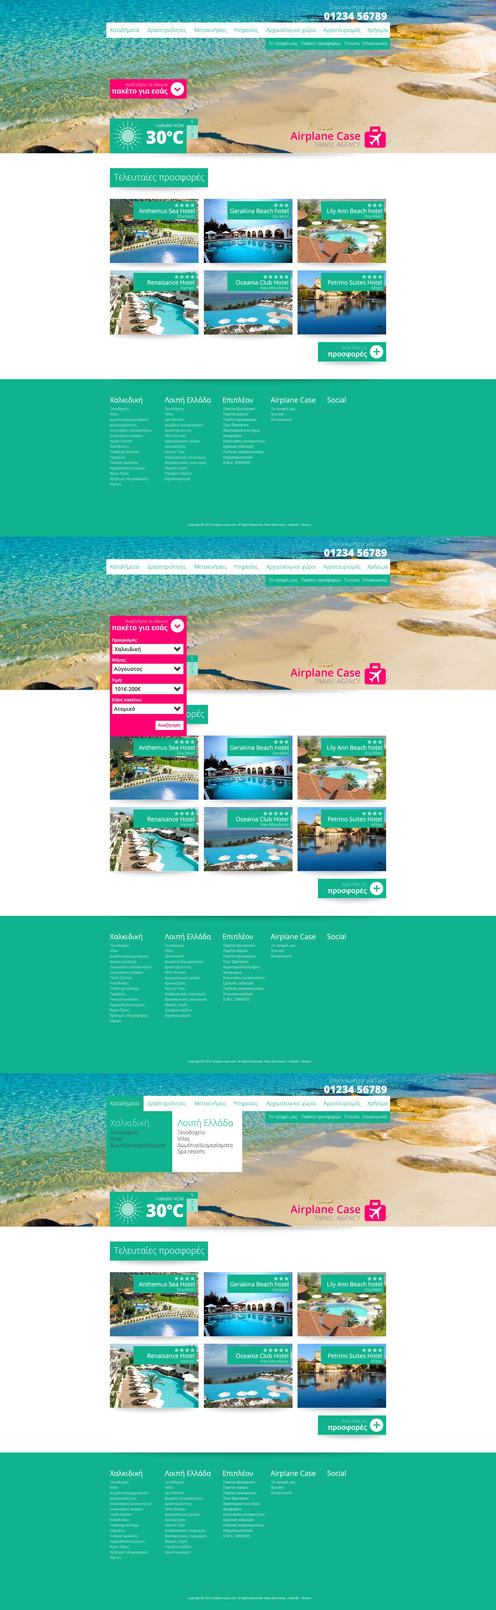 Travel Agency Website - concept by primitiveart-87